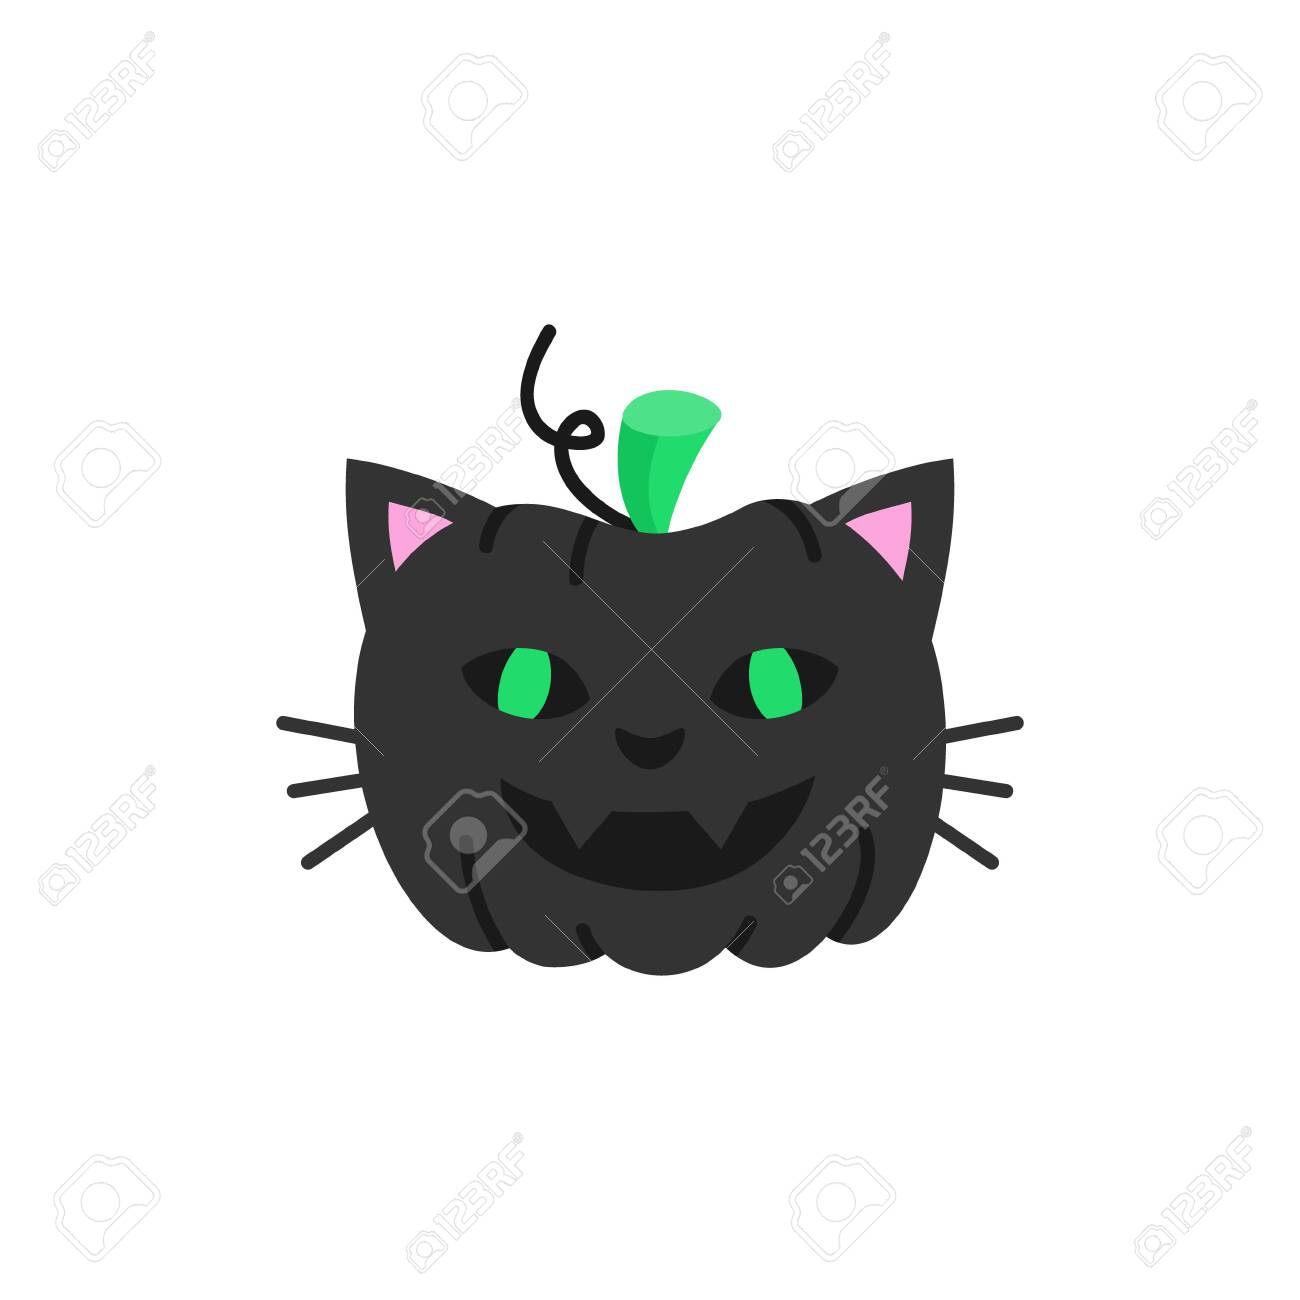 Cute hand drawn spooky carved pumpkin in cat costume vector illustration